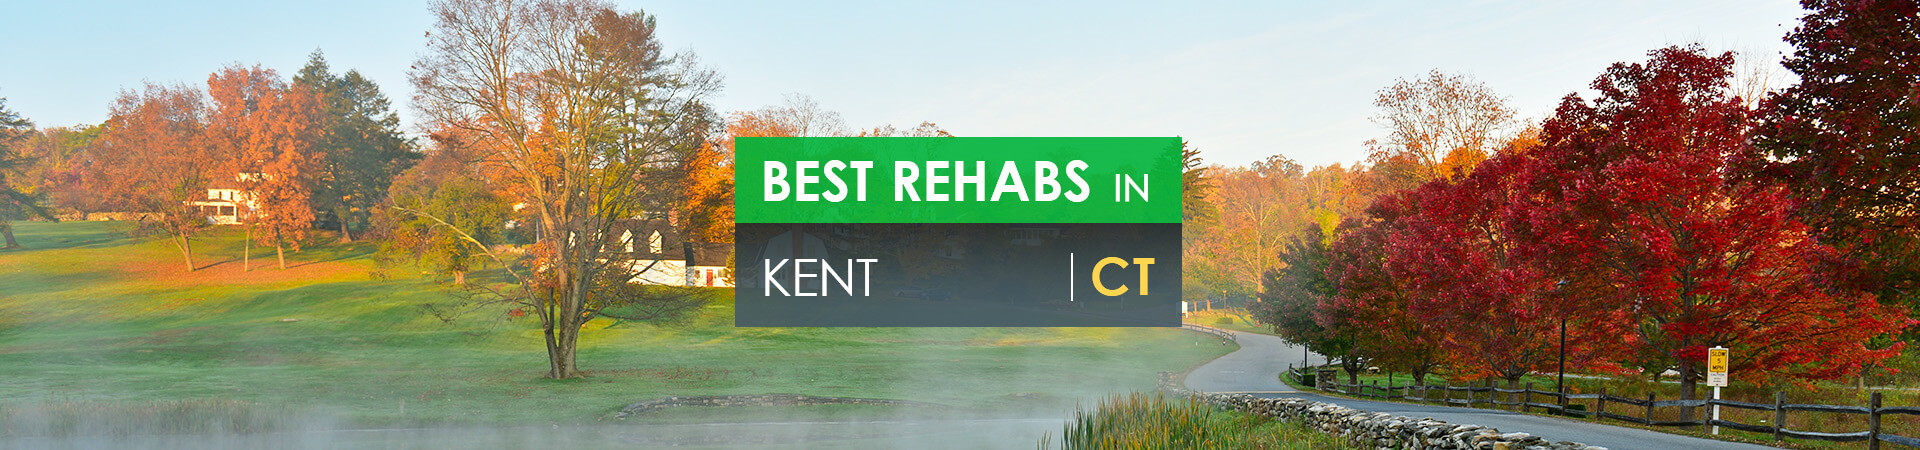 Best rehabs in Kent, CT